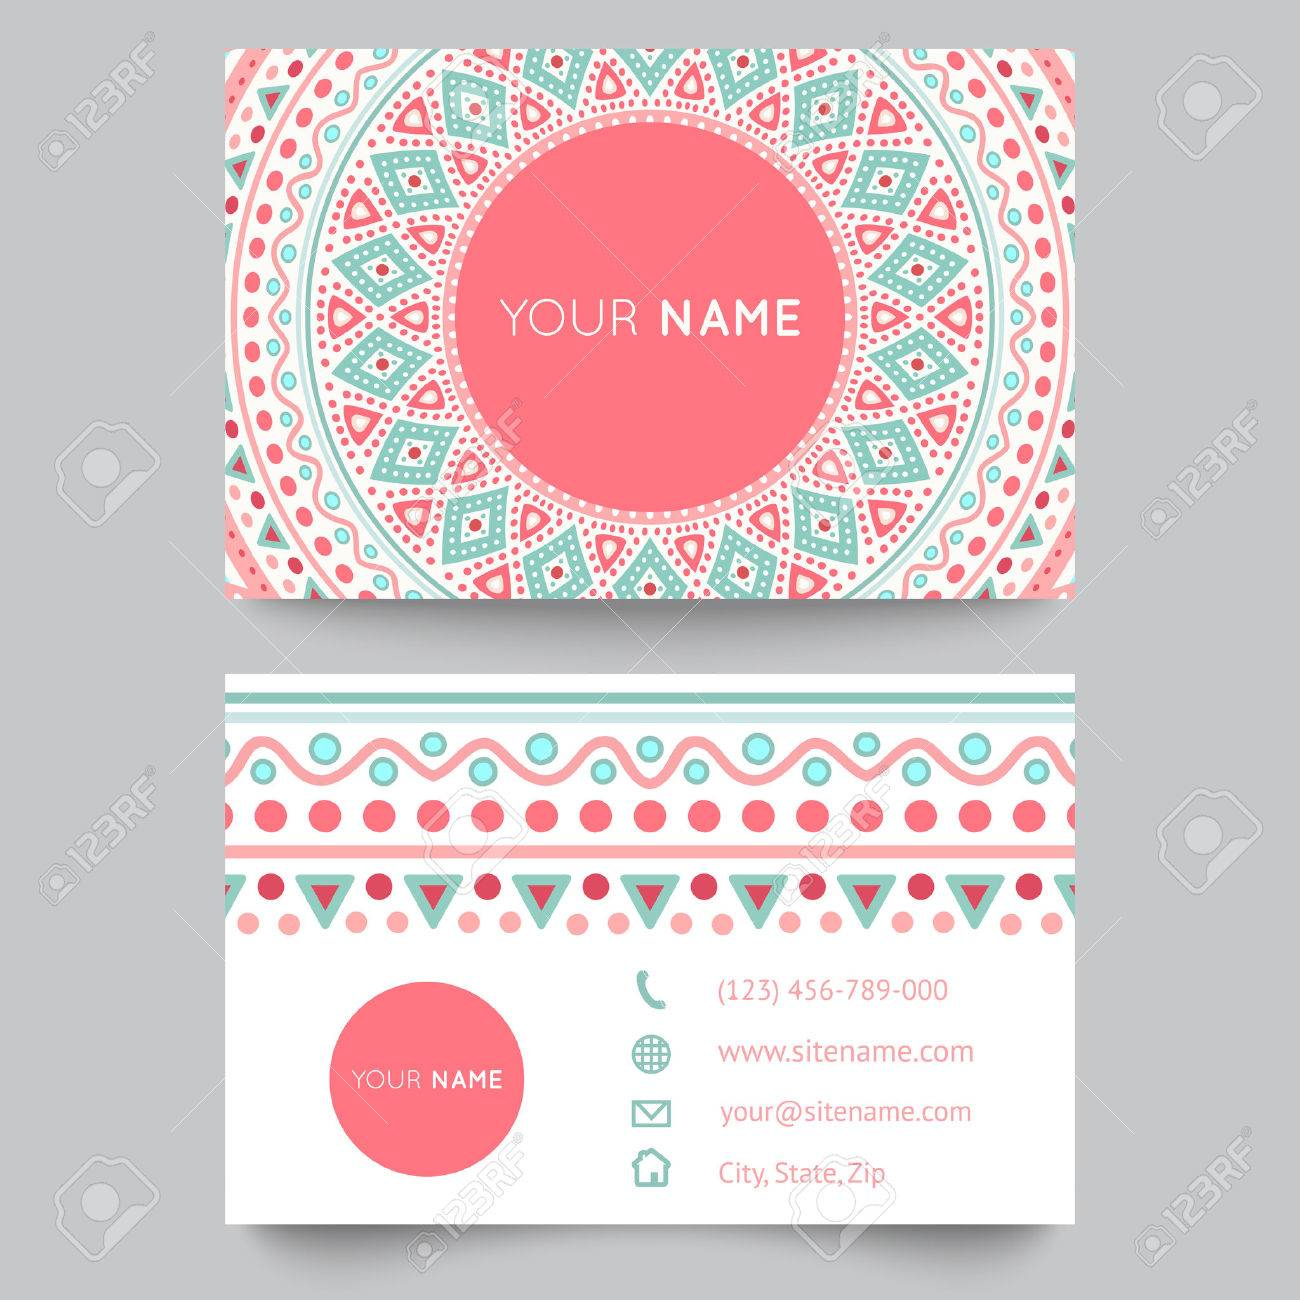 Business card template blue white and pink beauty fashion pattern business card template blue white and pink beauty fashion pattern vector design editable trible wajeb Gallery